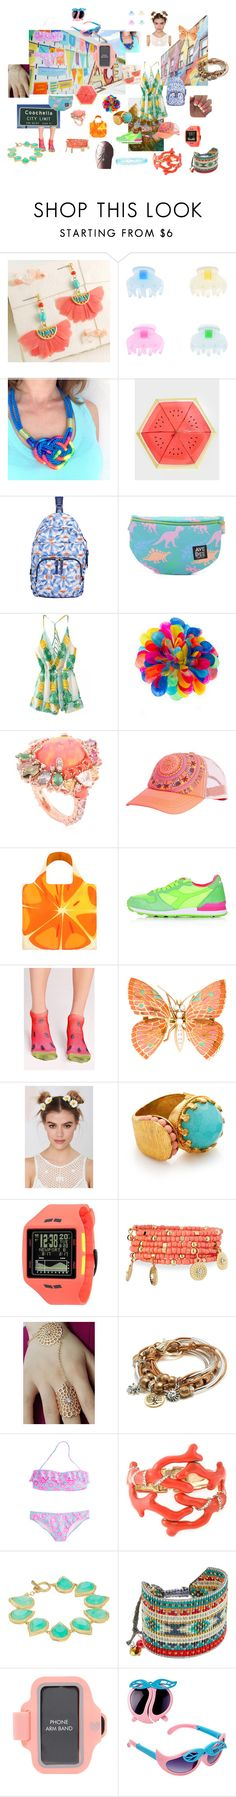 """""""Coachella! Outfit"""" by rocketkitty ❤ liked on Polyvore featuring Shoreditch, Monsoon, Paperchase, Tumi, Forever 21, Anabela Chan, Billabong, LOQI, Topshop and Missguided"""